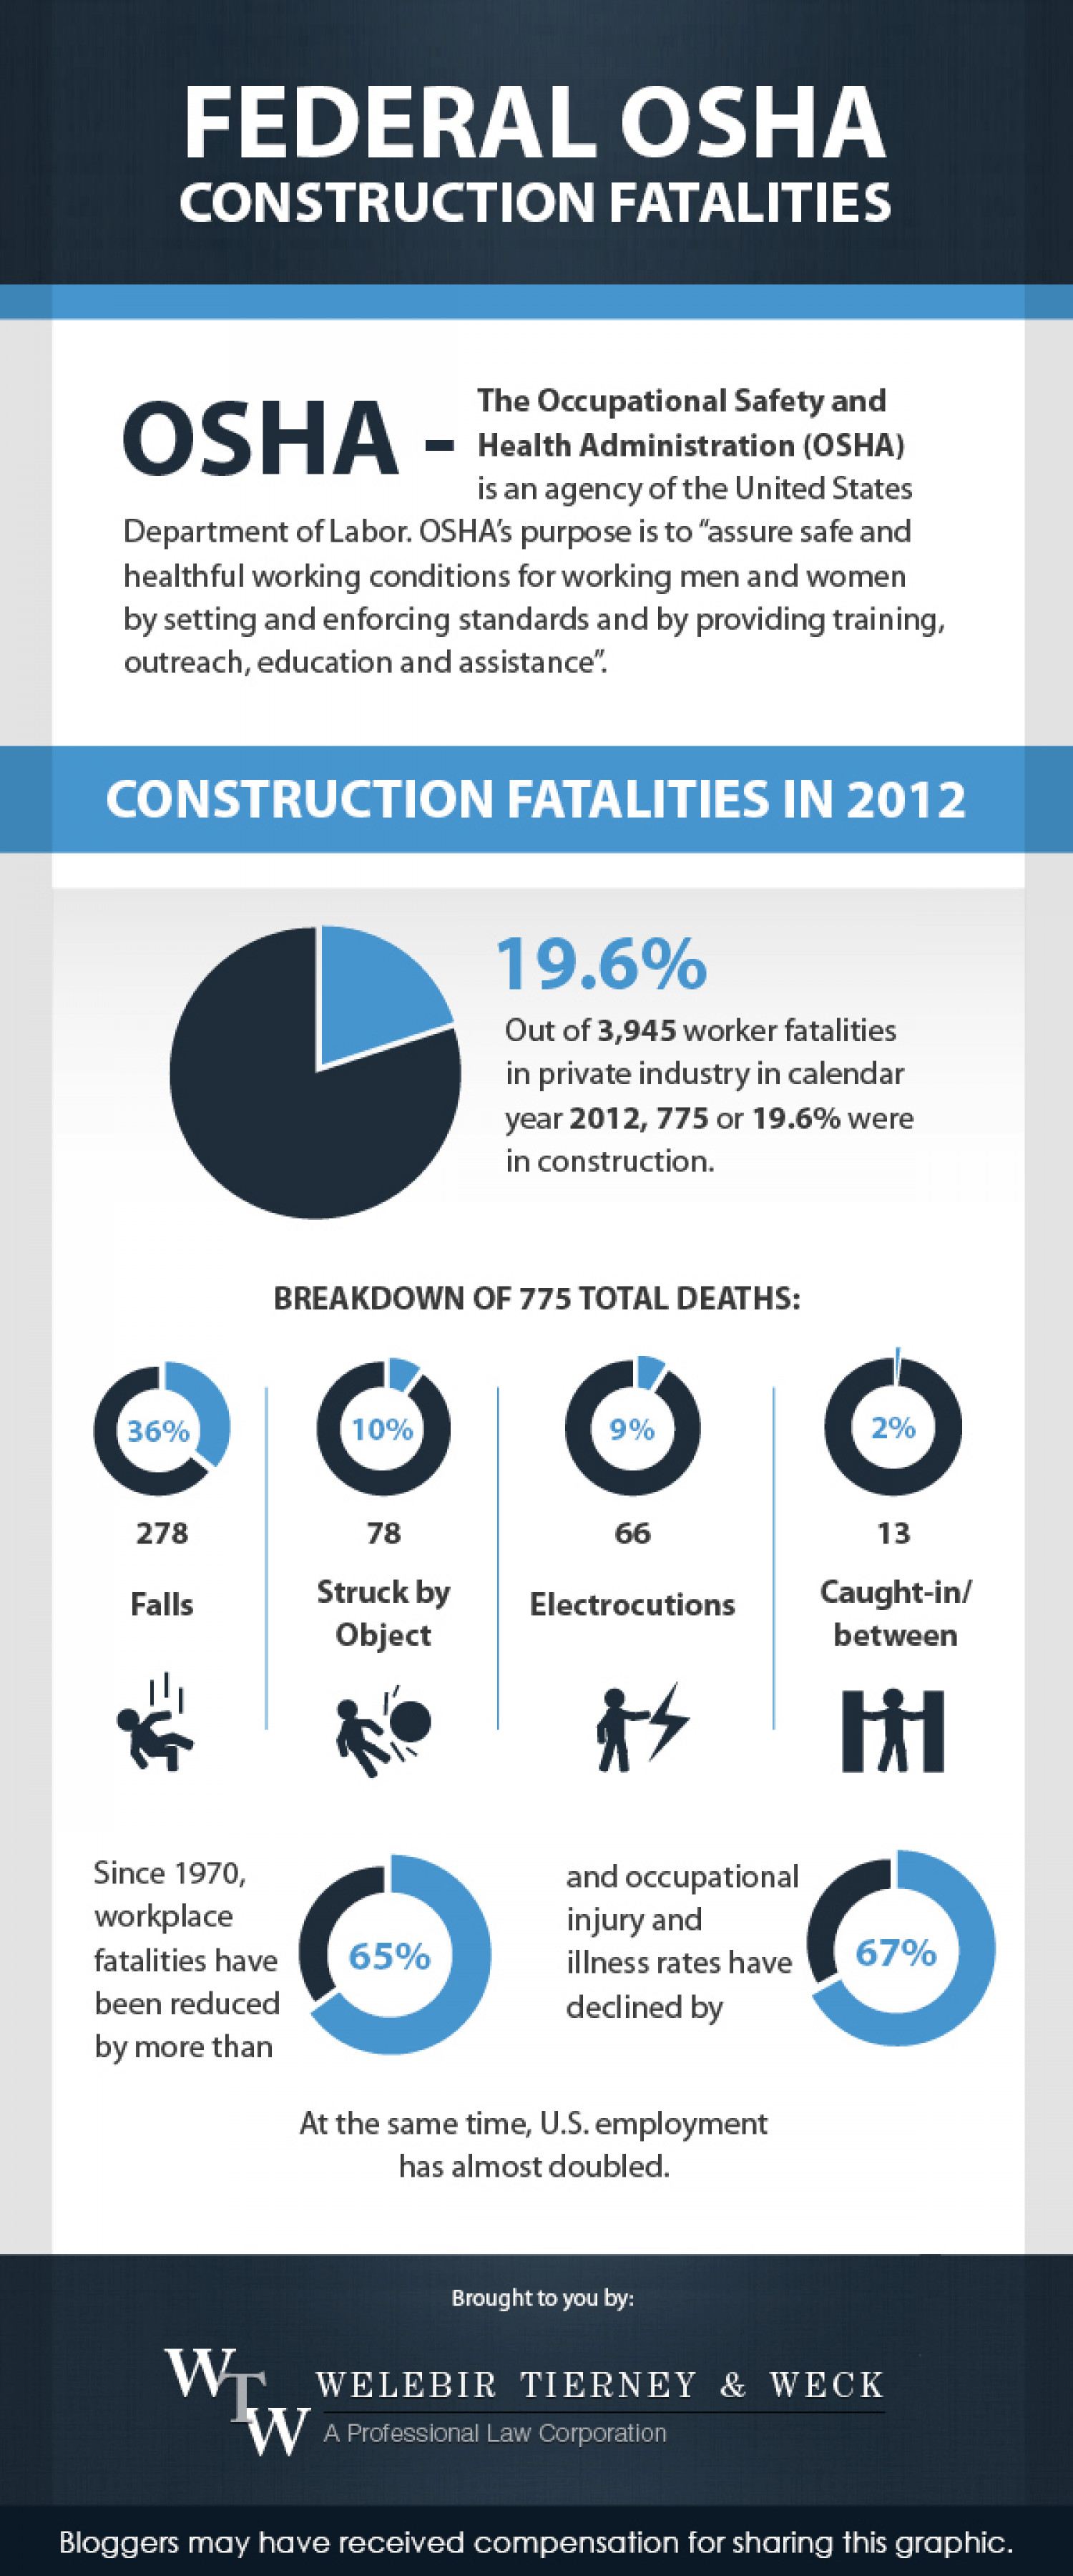 Federal OSHA Construction Fatalities Infographic